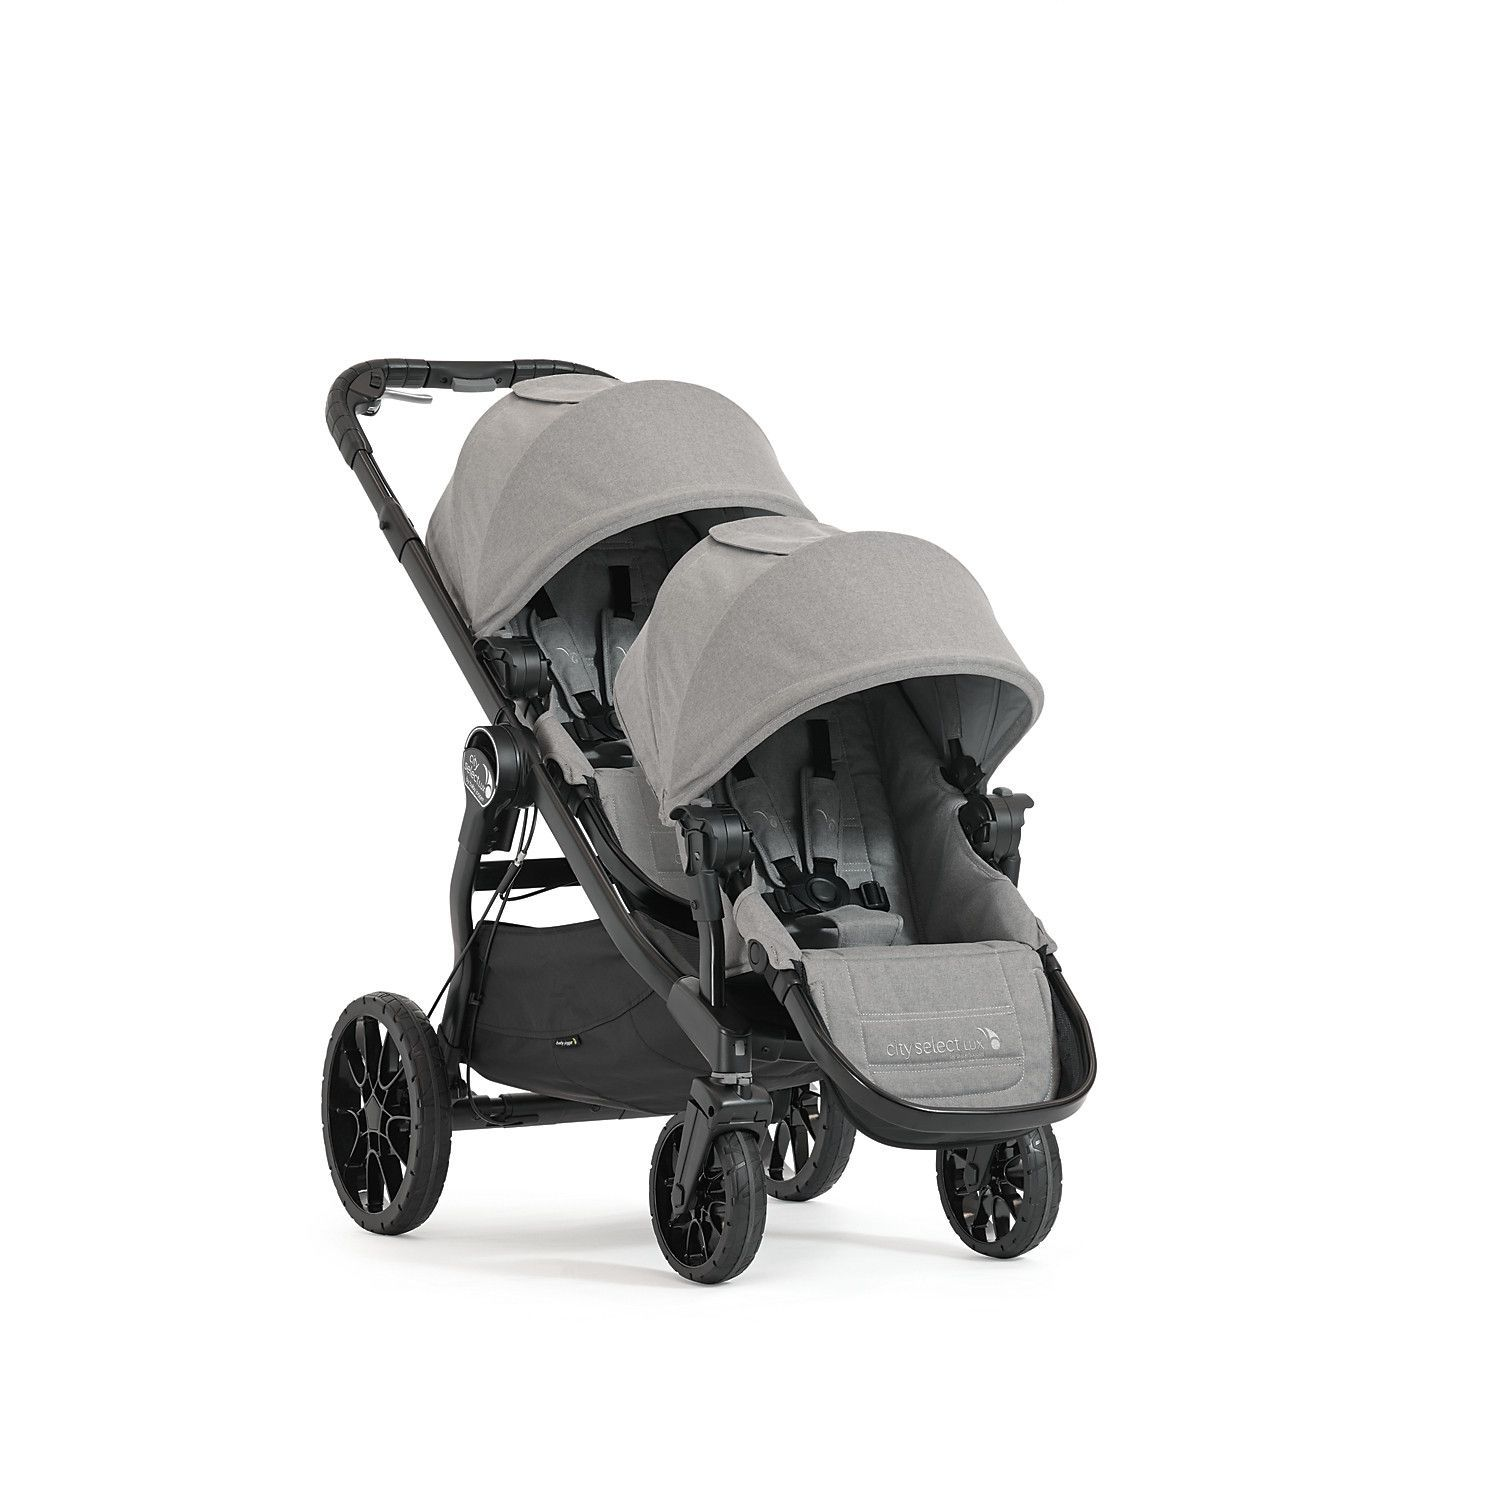 Baby Jogger City Select LUX Stroller Baby jogger city